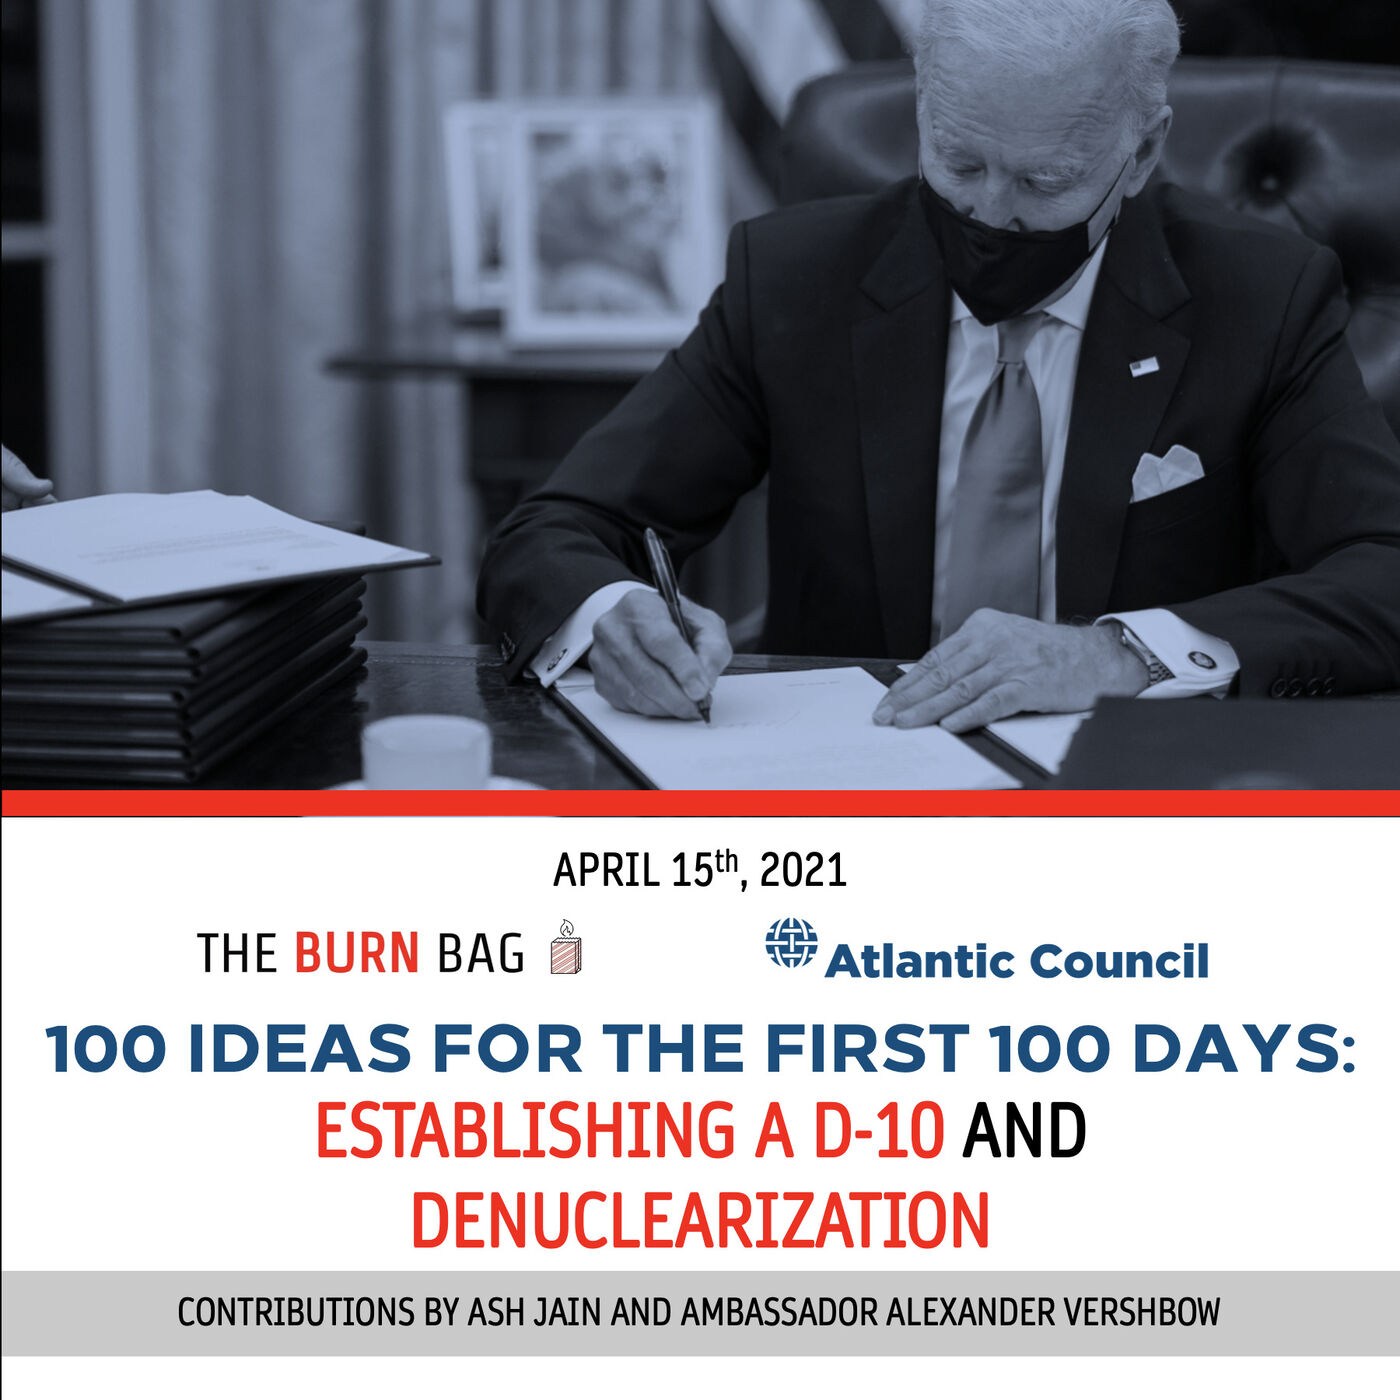 100 Ideas for the First 100 Days: Establishing a D-10 and Denuclearization